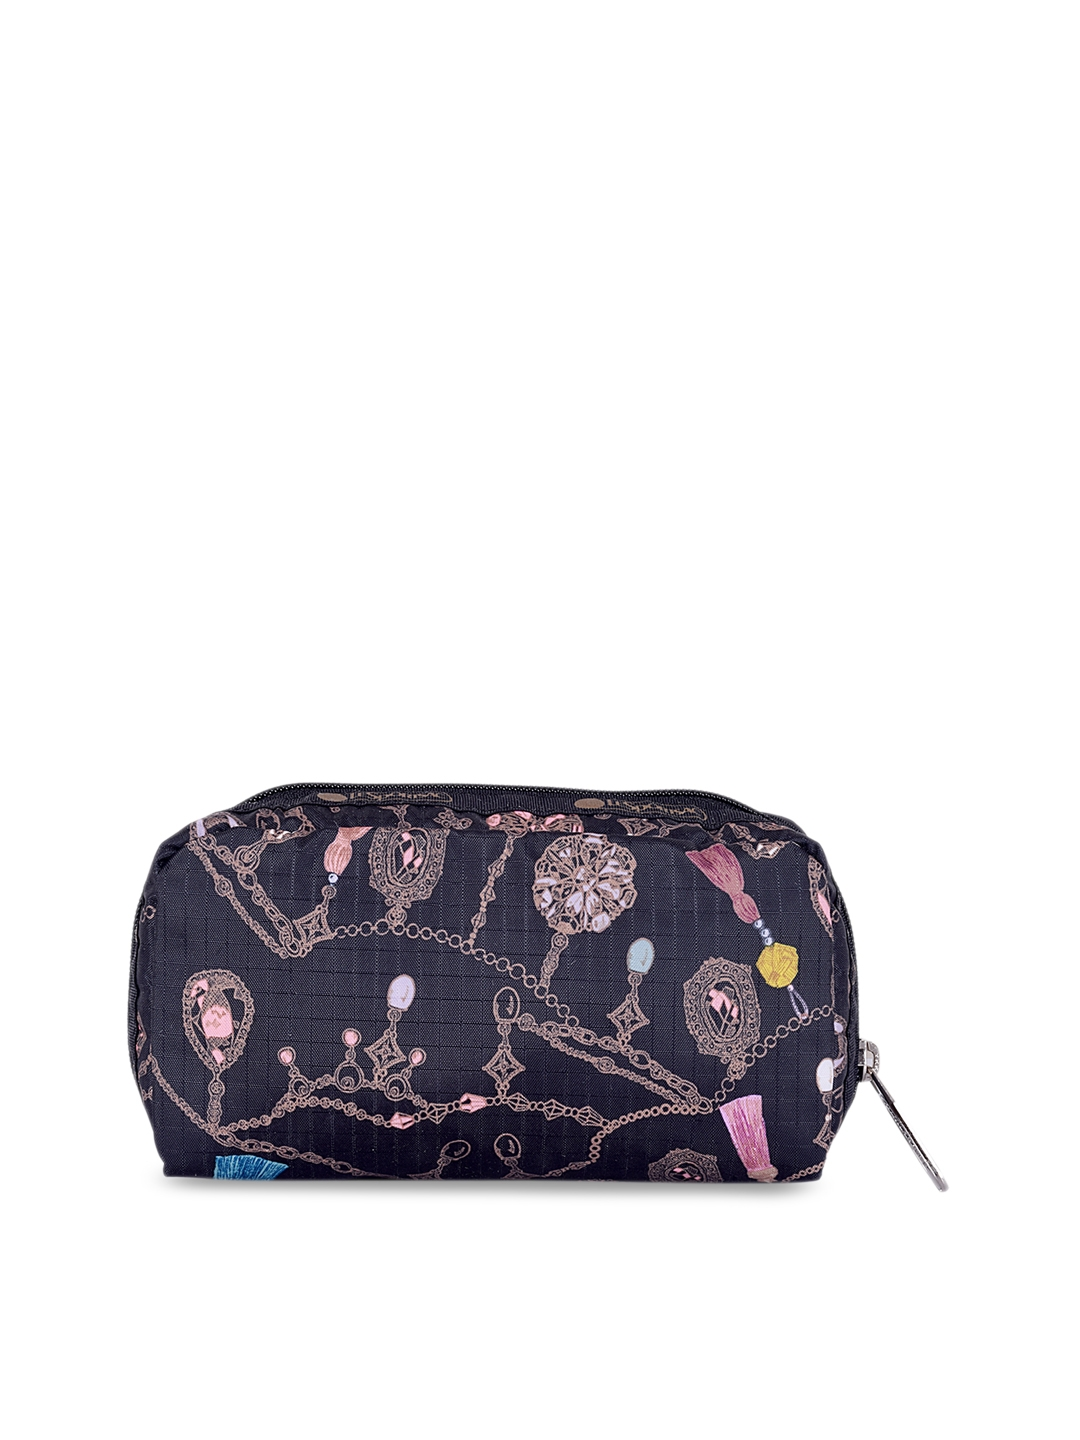 LeSportsac Blue   Pink Printed Rectangular Cosmetic Pouch